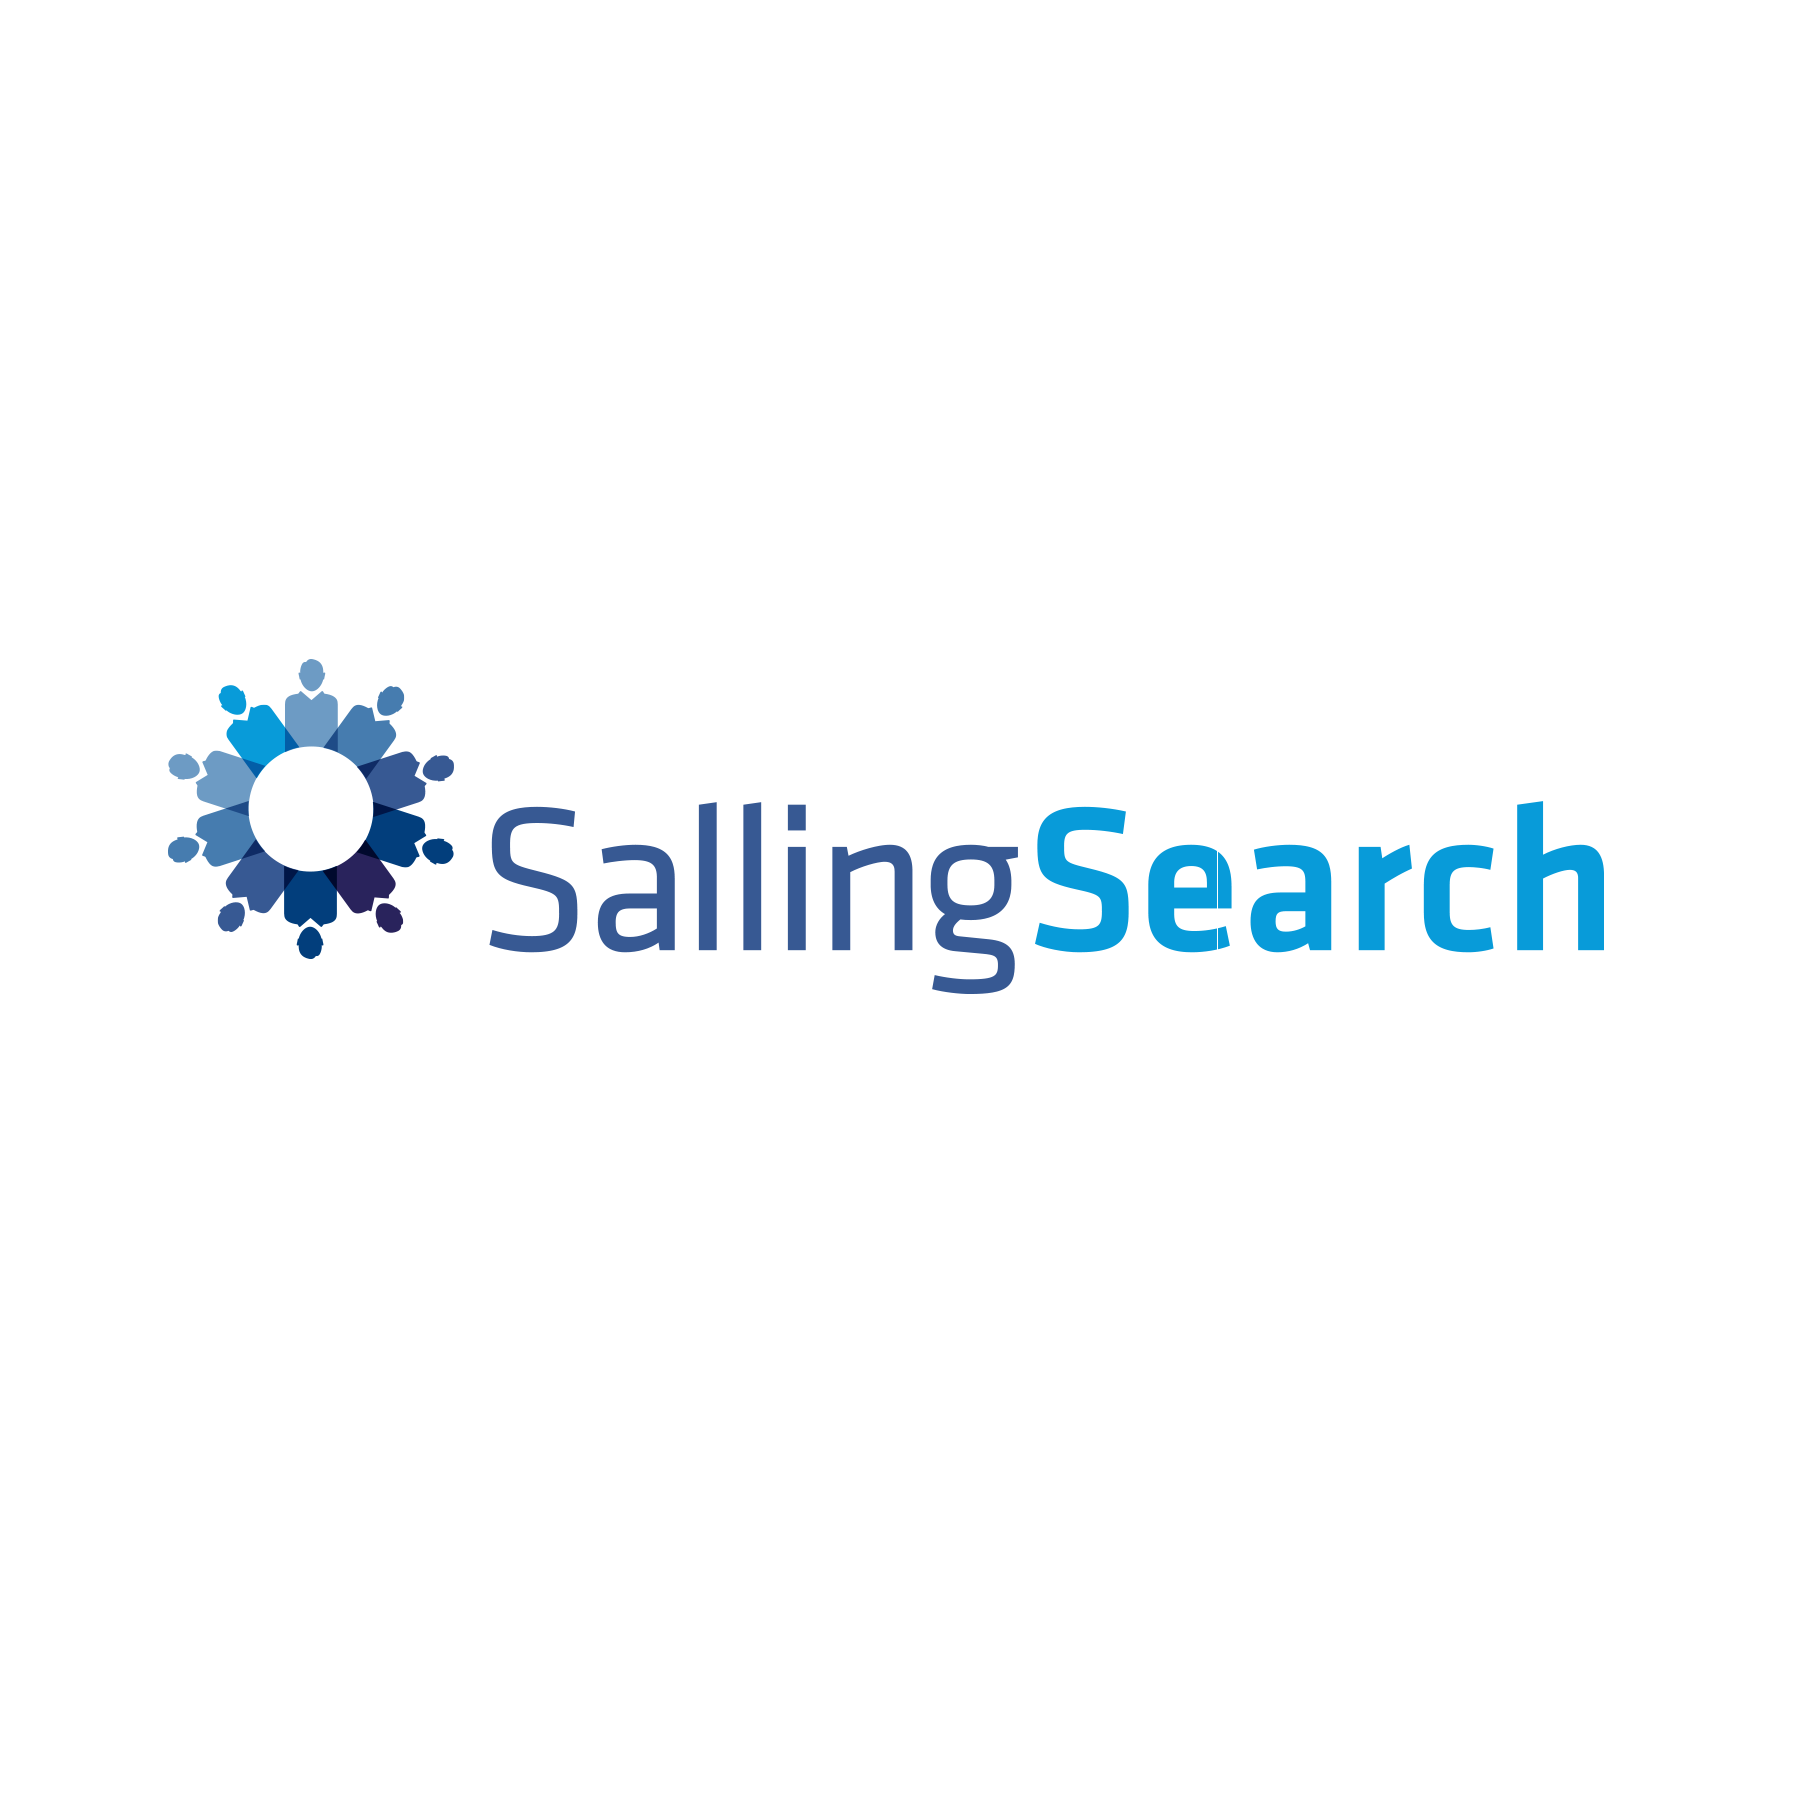 salling search